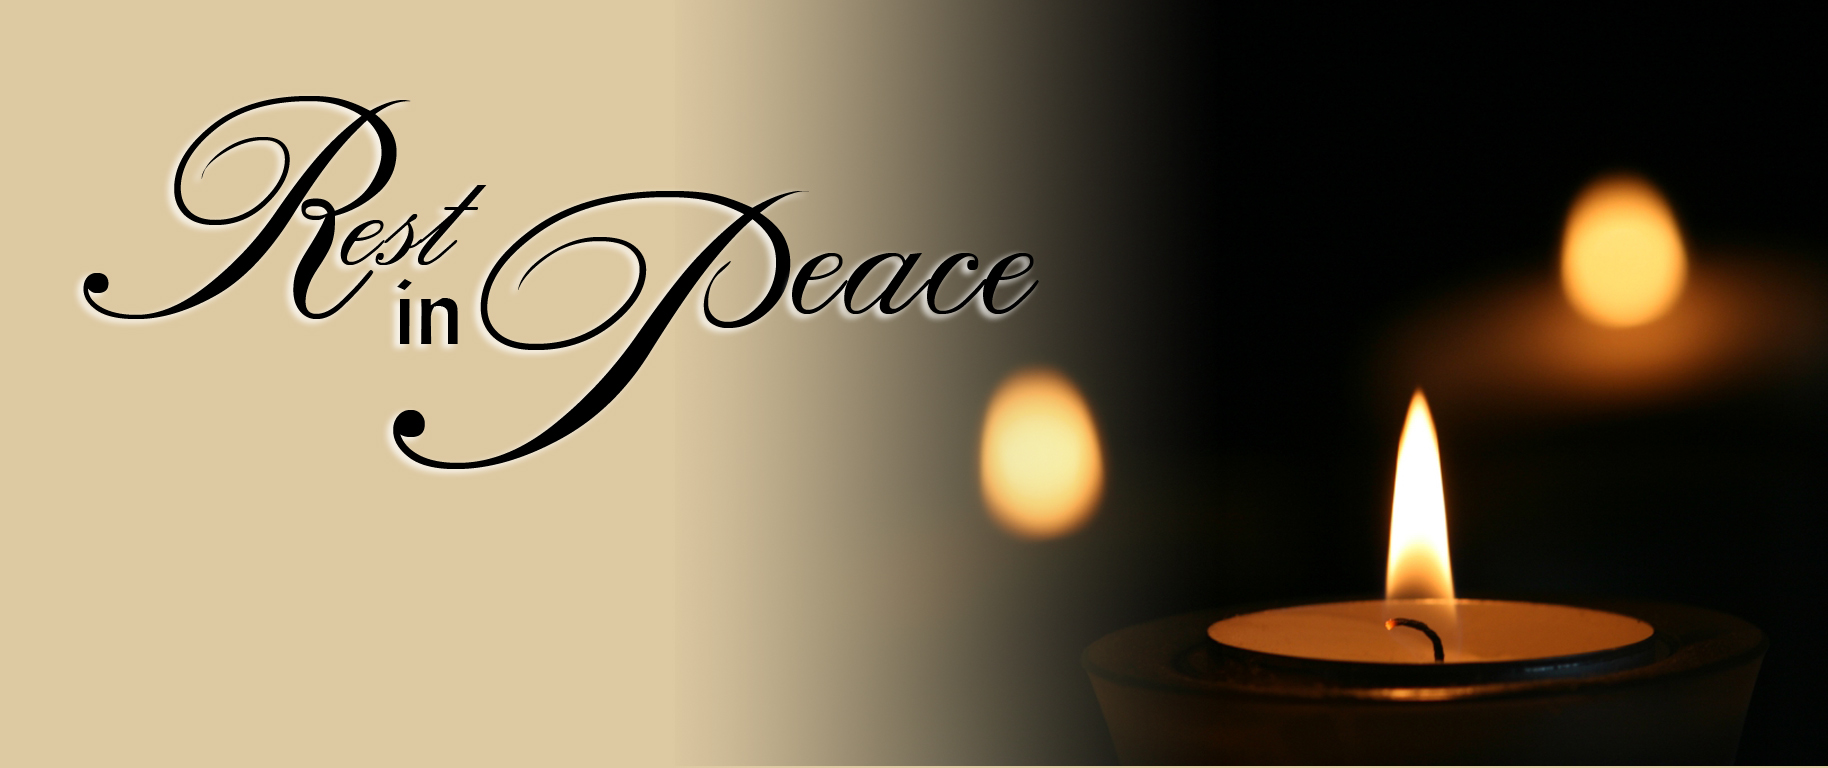 rest-in-peace-quotes-sayings-images-pictures-status.jpg